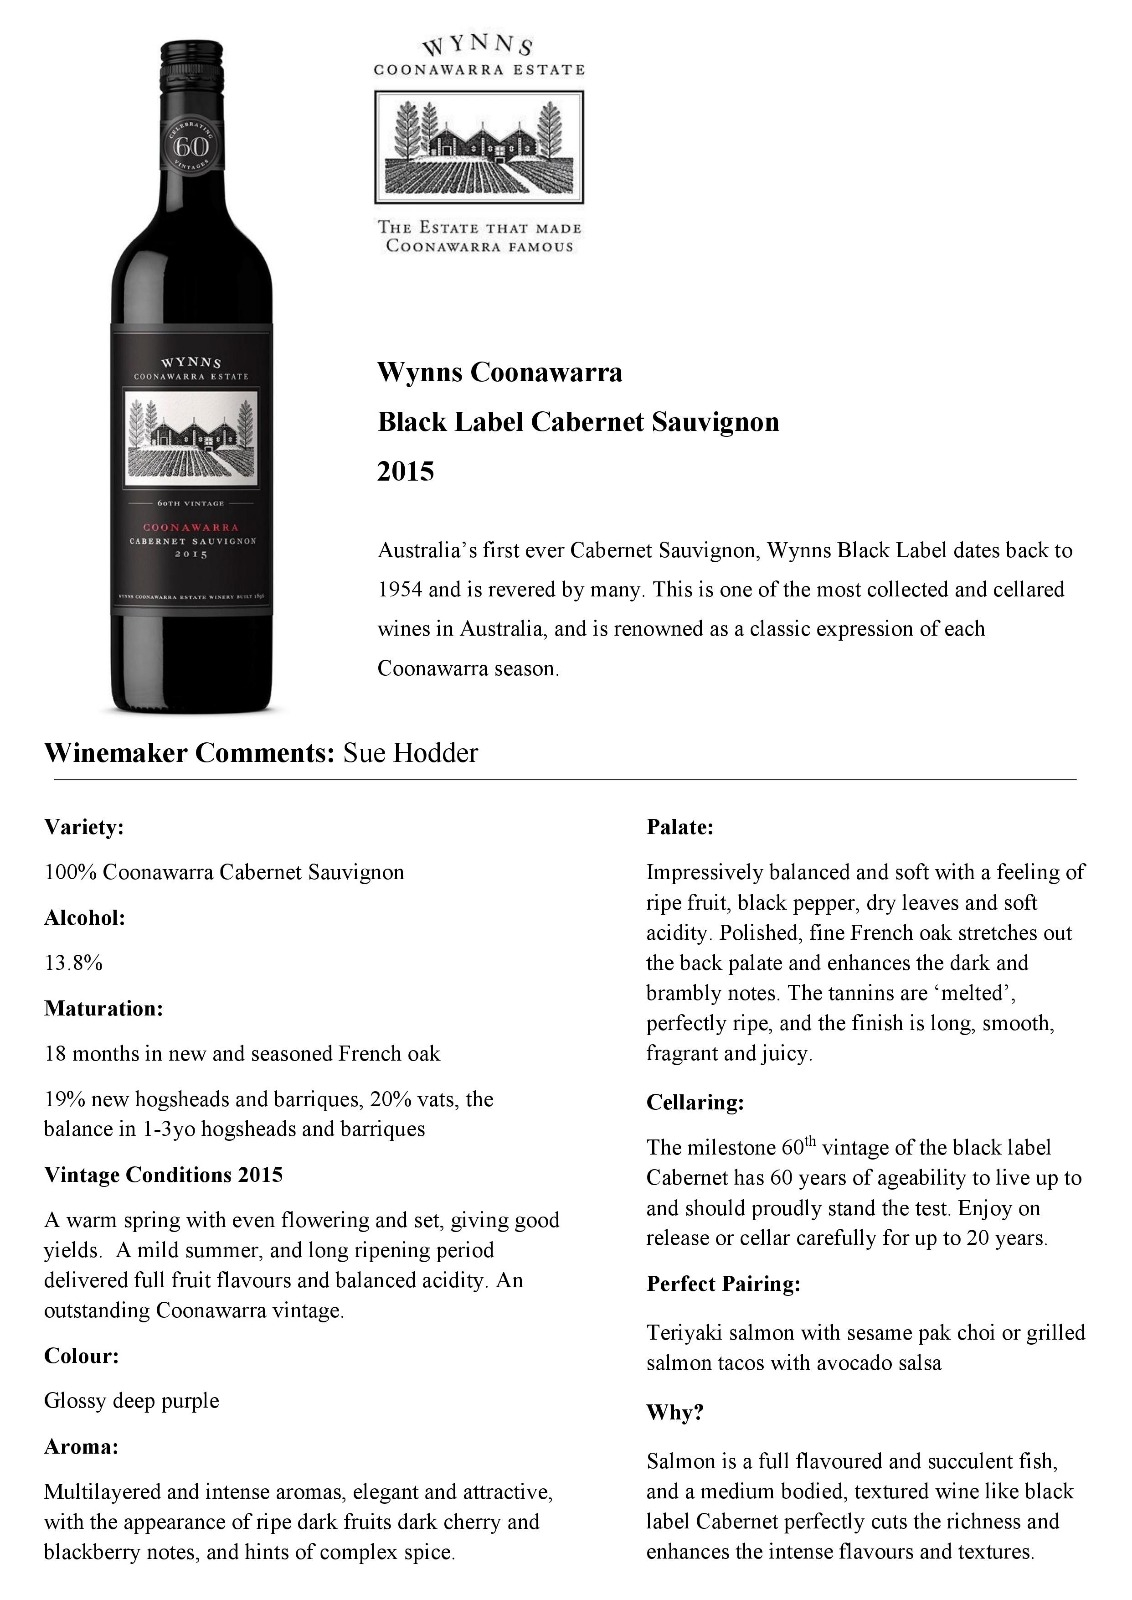 Australia's first ever Cabernet Sauvignon, Wynns Black Label dates back to 1954 and is revered by many. This is one of the most collected and cellared wines in Australia, and is renowned as a classic expression of each Coonawarra season.